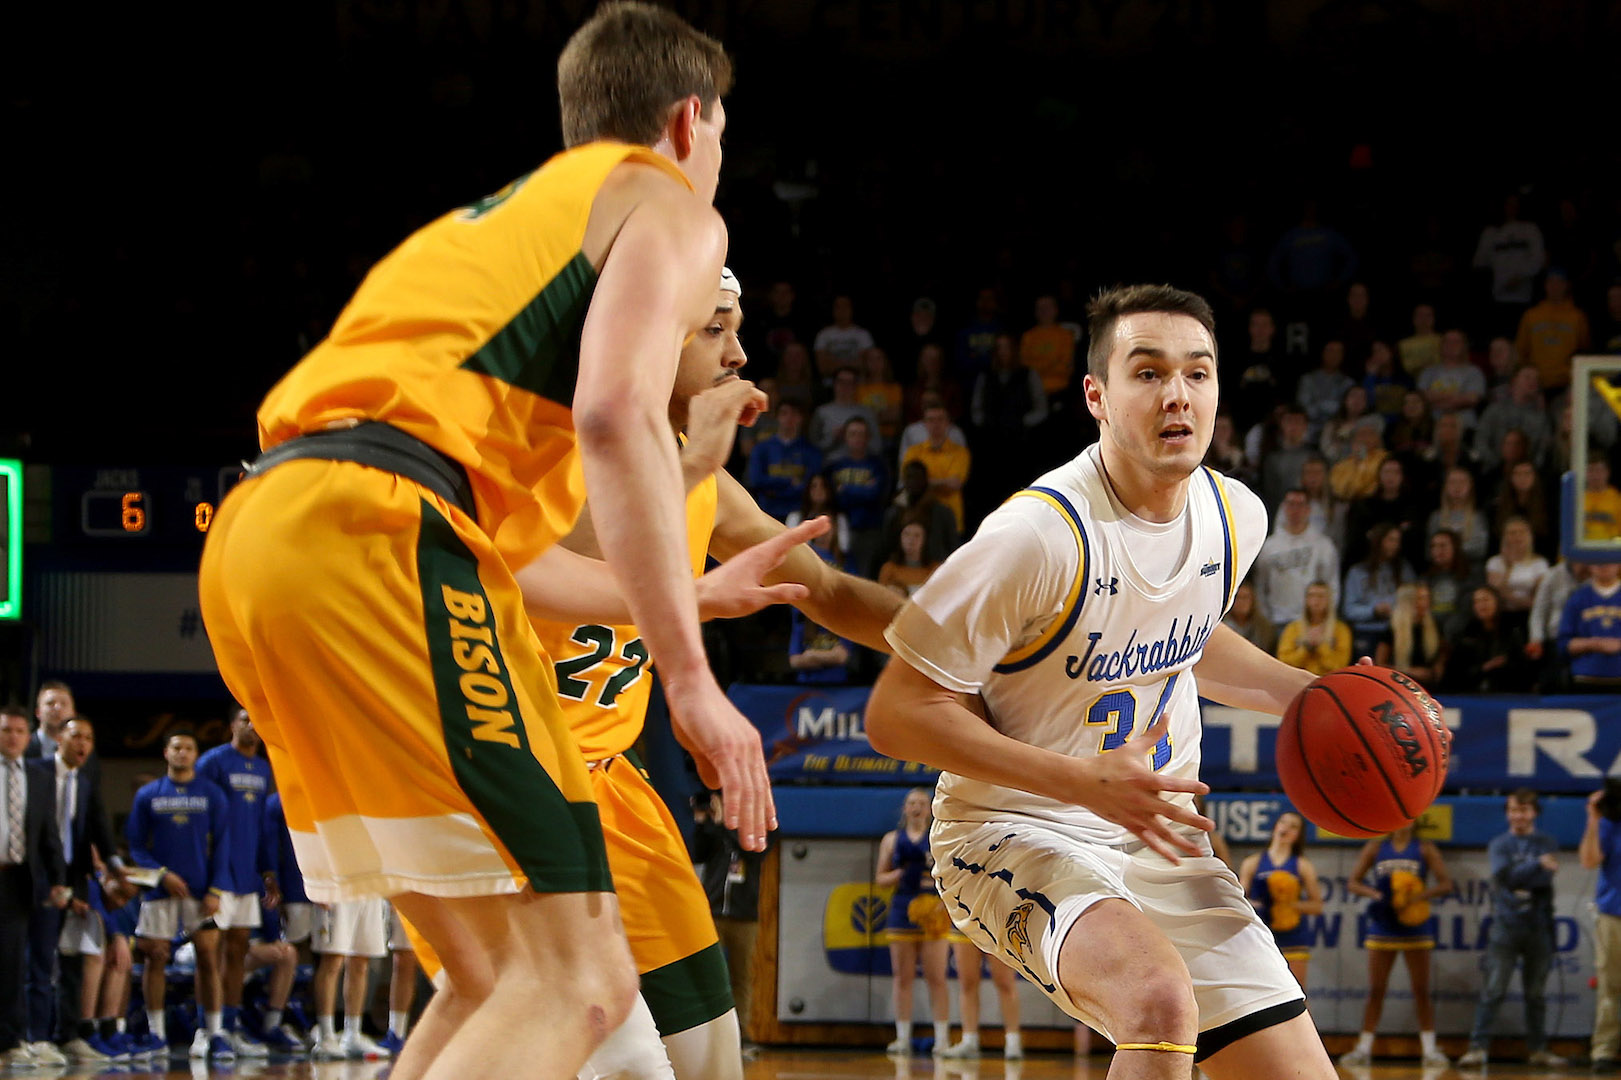 SDSU sophomore Alex Arians has been one of the Jacks' key contributors during their 6-2 start to league play. (Courtesy of SDSU Athletics)